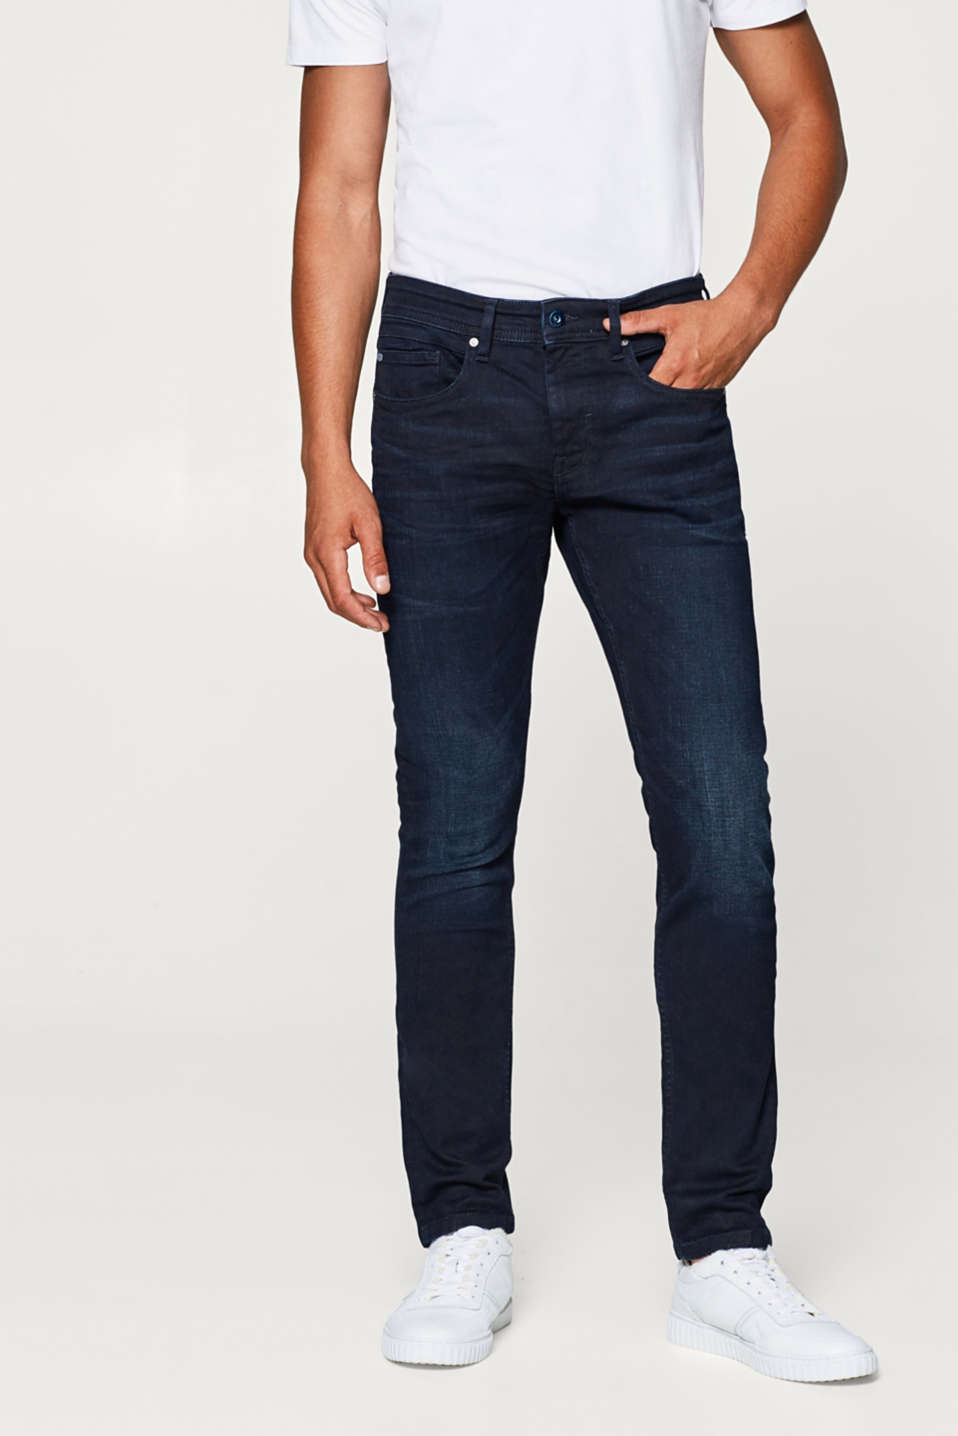 edc - Stretch jeans in a dark wash